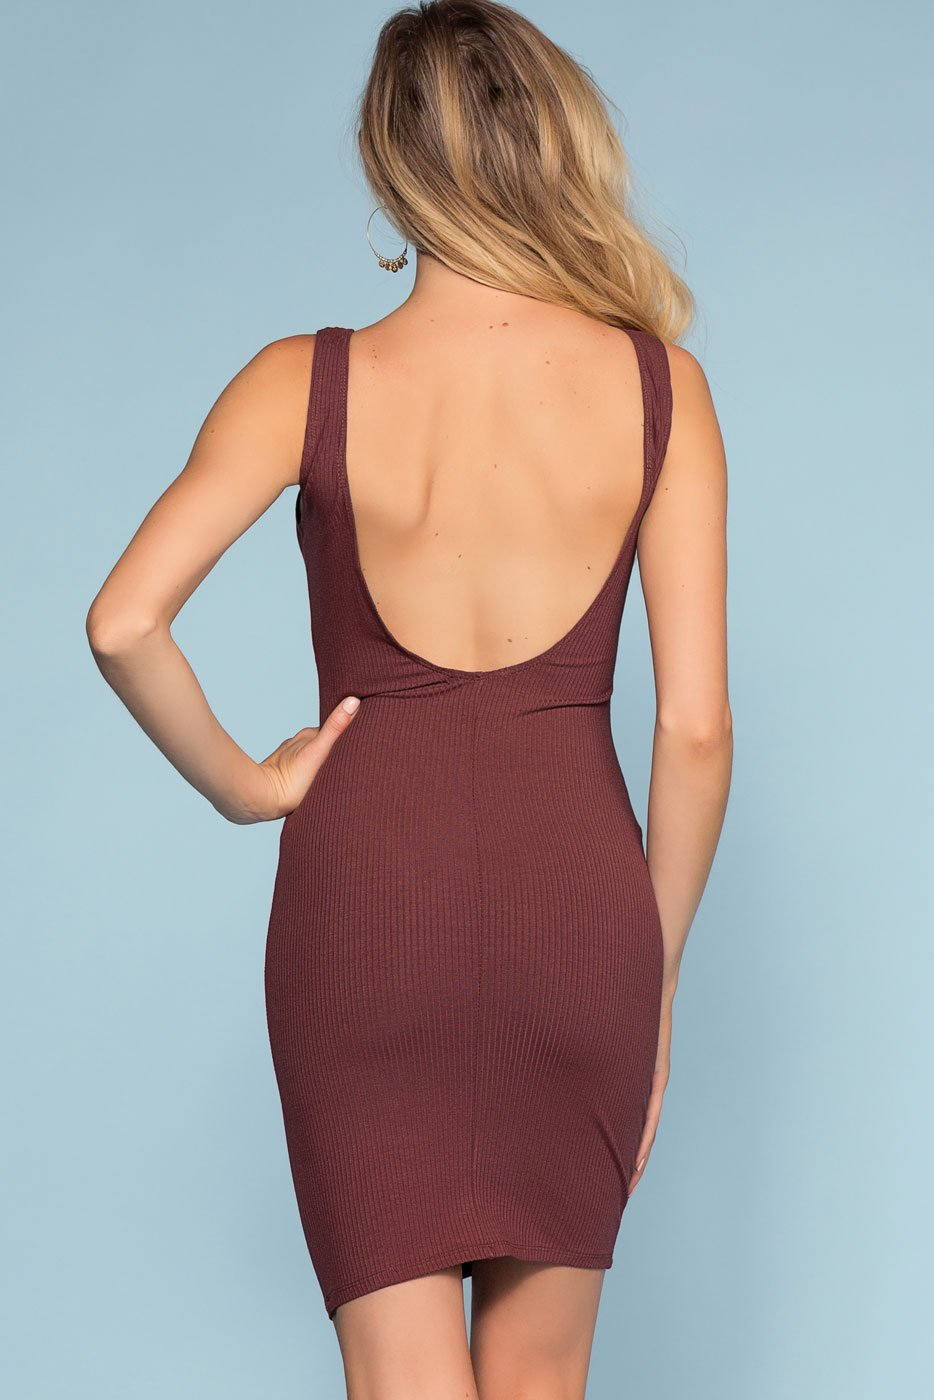 Dresses - Misty Bodycon Dress - Marsala